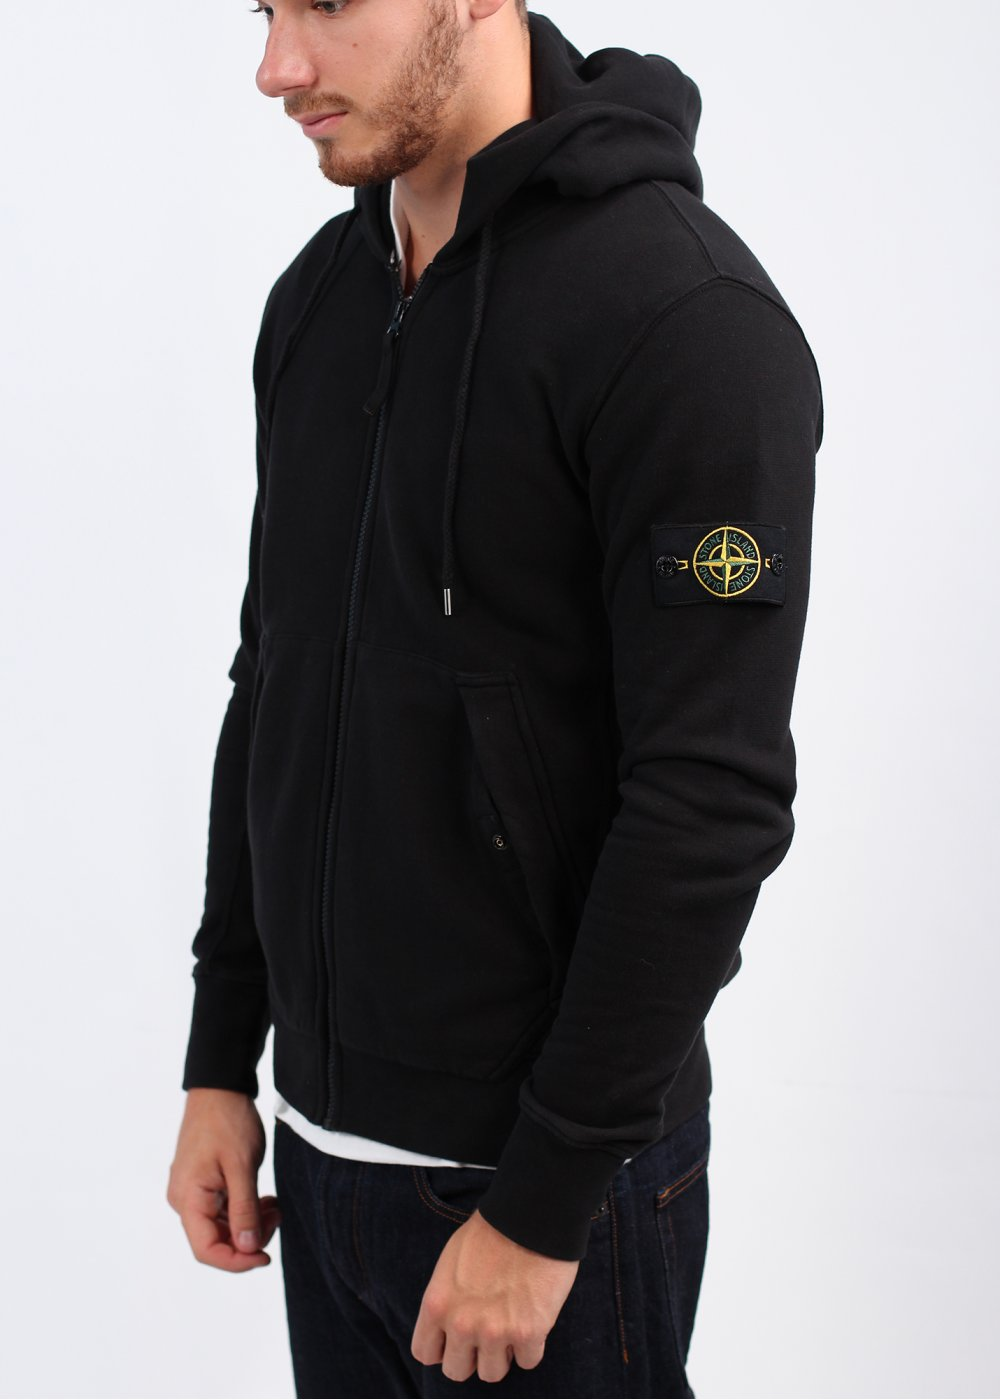 stone island linen fleece zip knit sweatshirt jacket. Black Bedroom Furniture Sets. Home Design Ideas